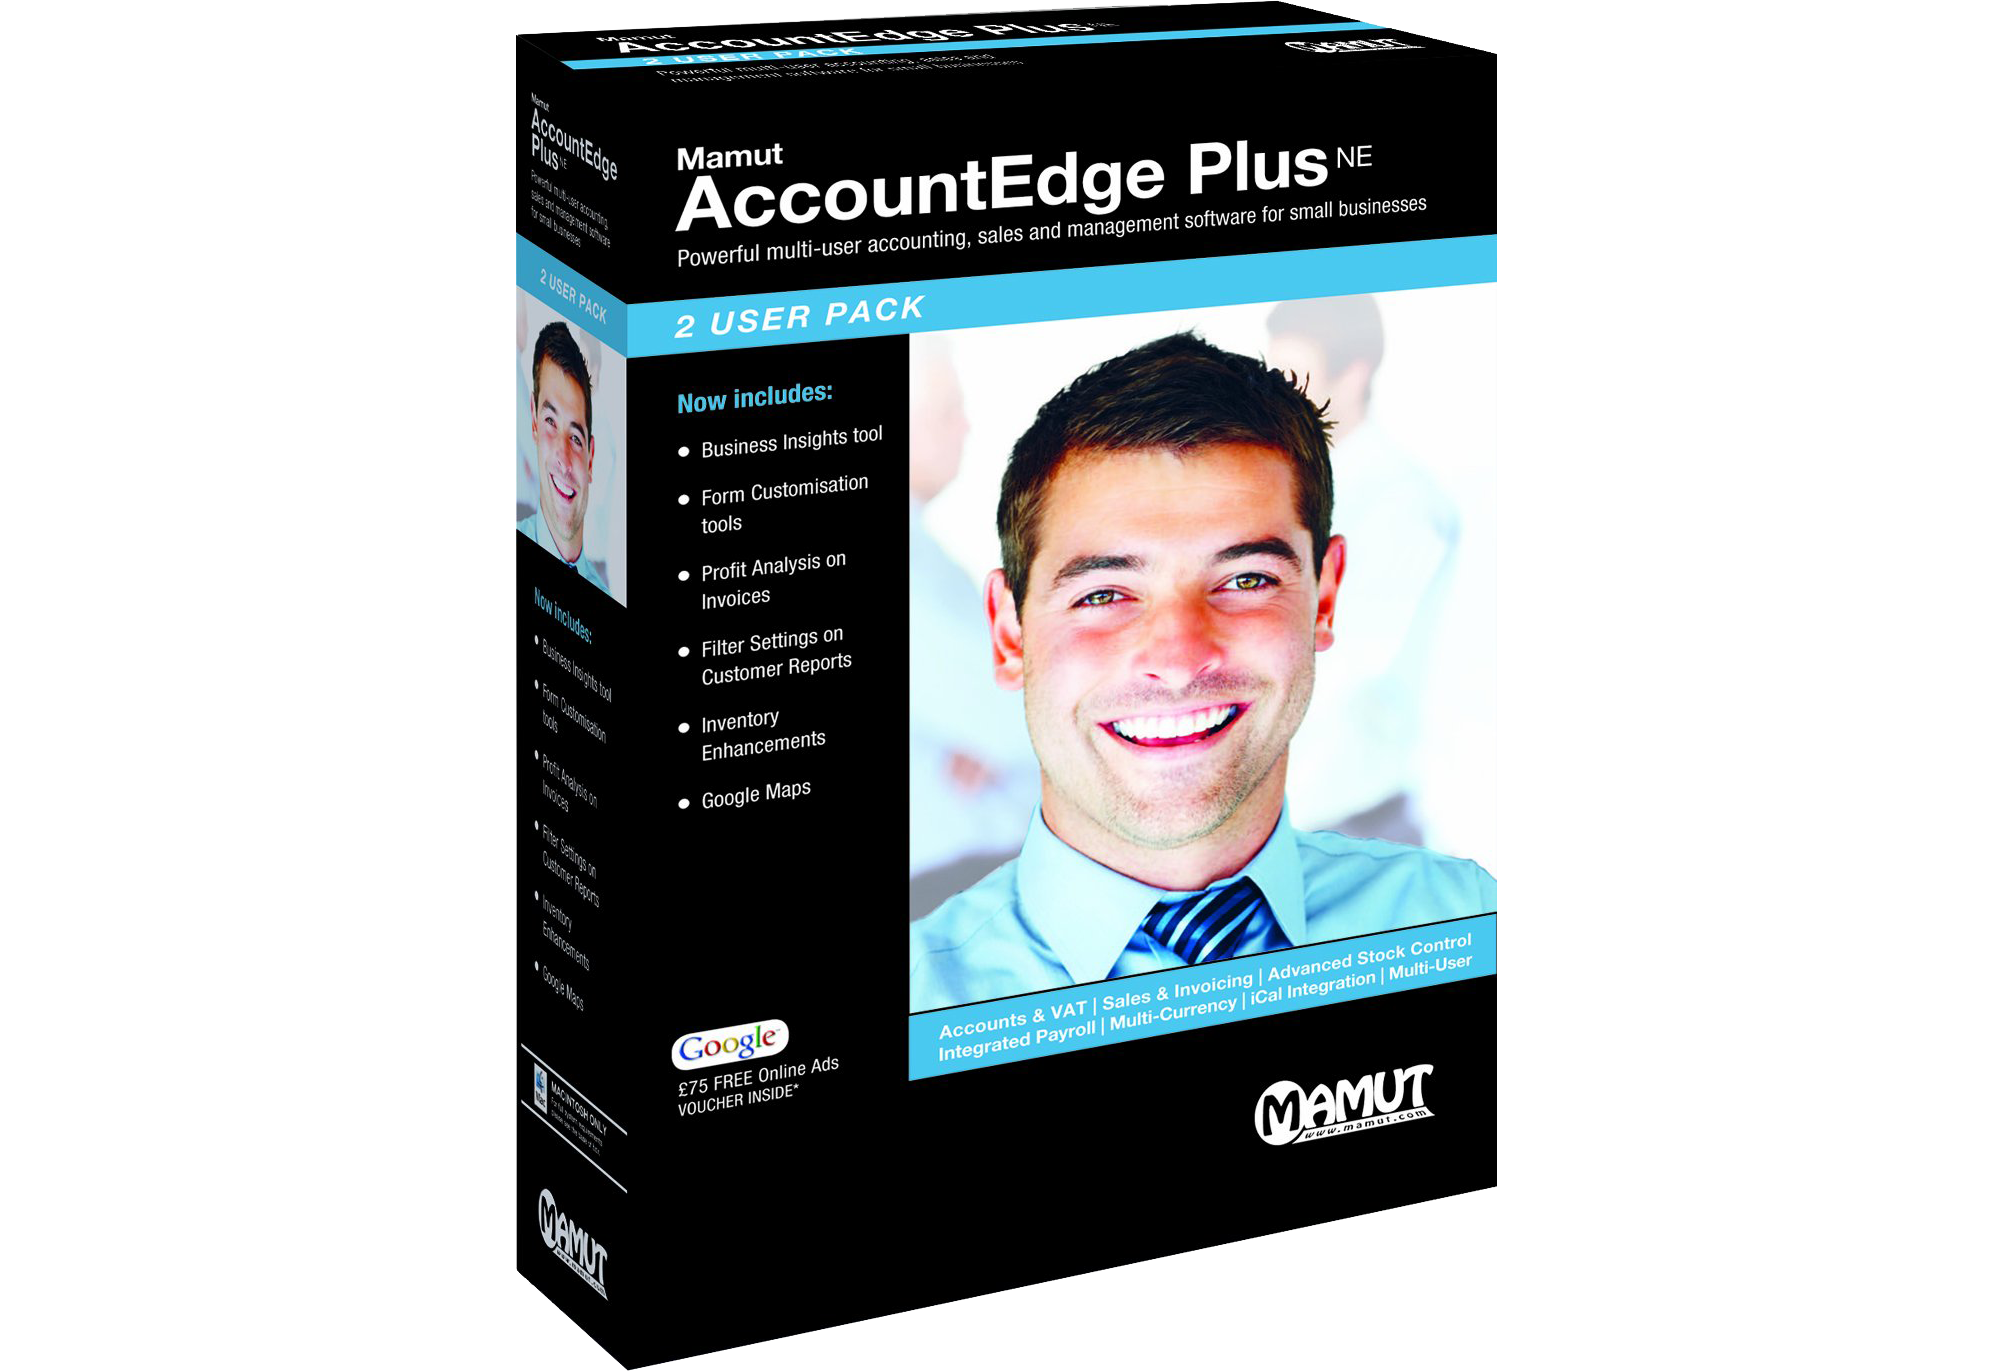 AccountEdge Plus NE